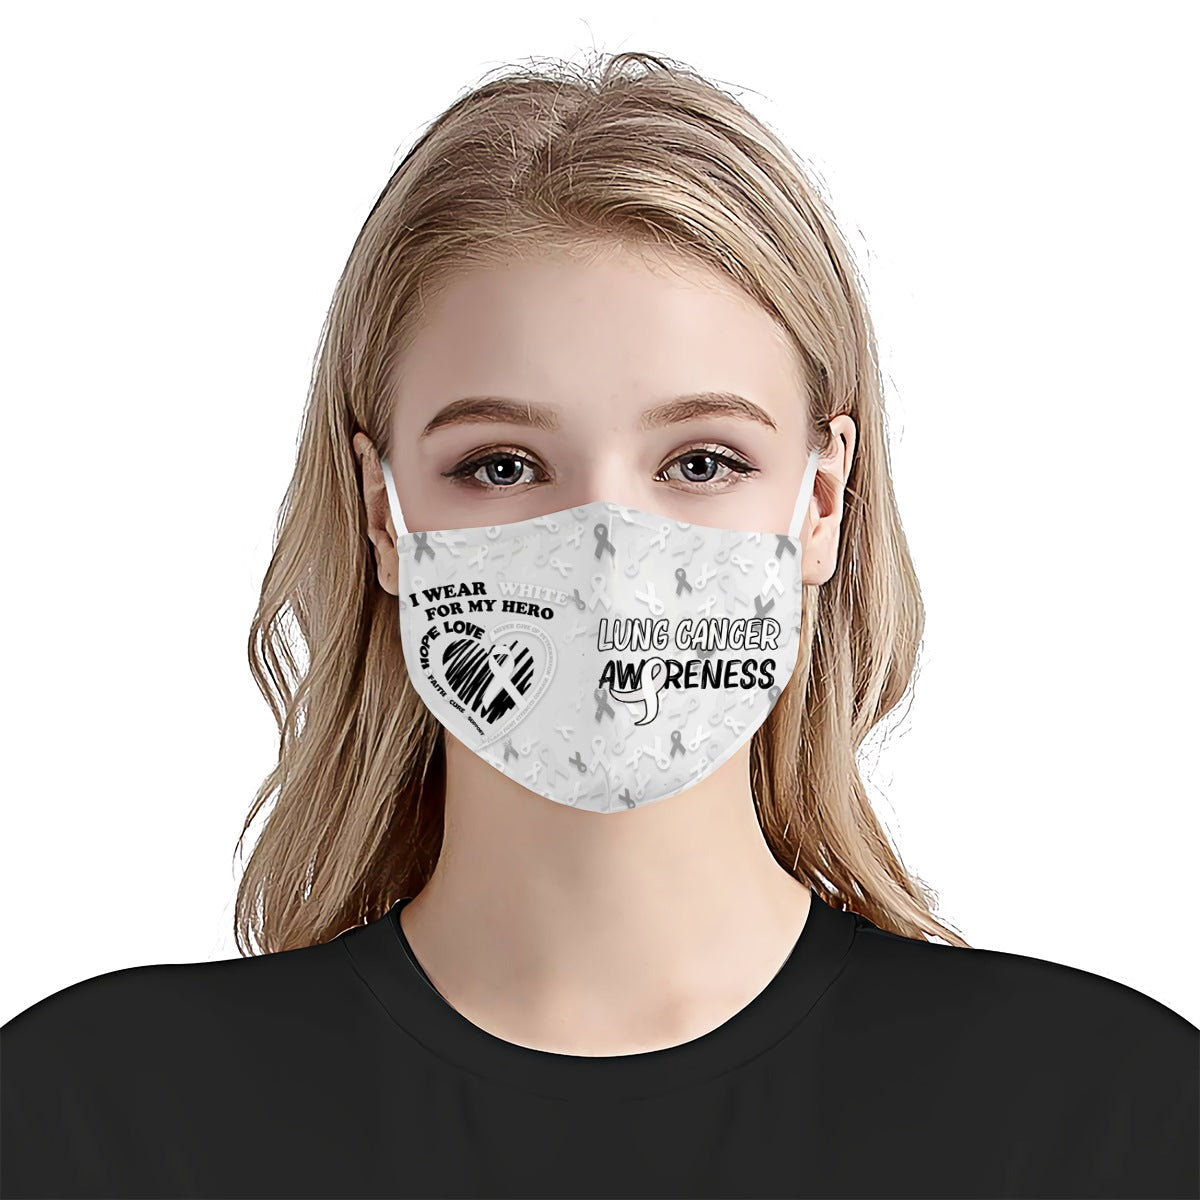 I Wear White For My Hero Lung Cancer Awareness EZ03 0405 Face Mask - Hyperfavor